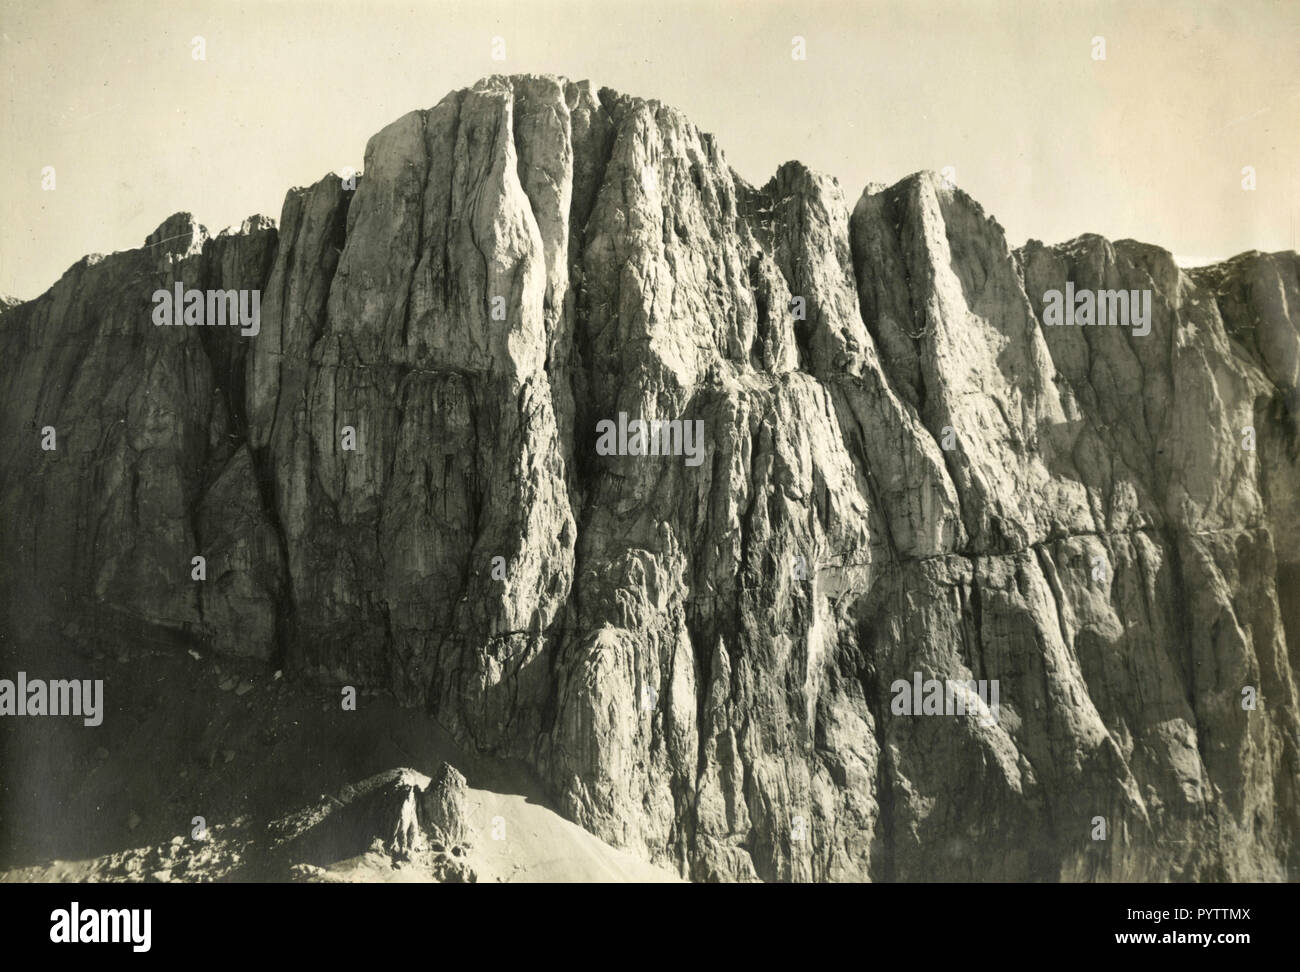 View of the South face of Marmolada mountain, Italy 1930s - Stock Image